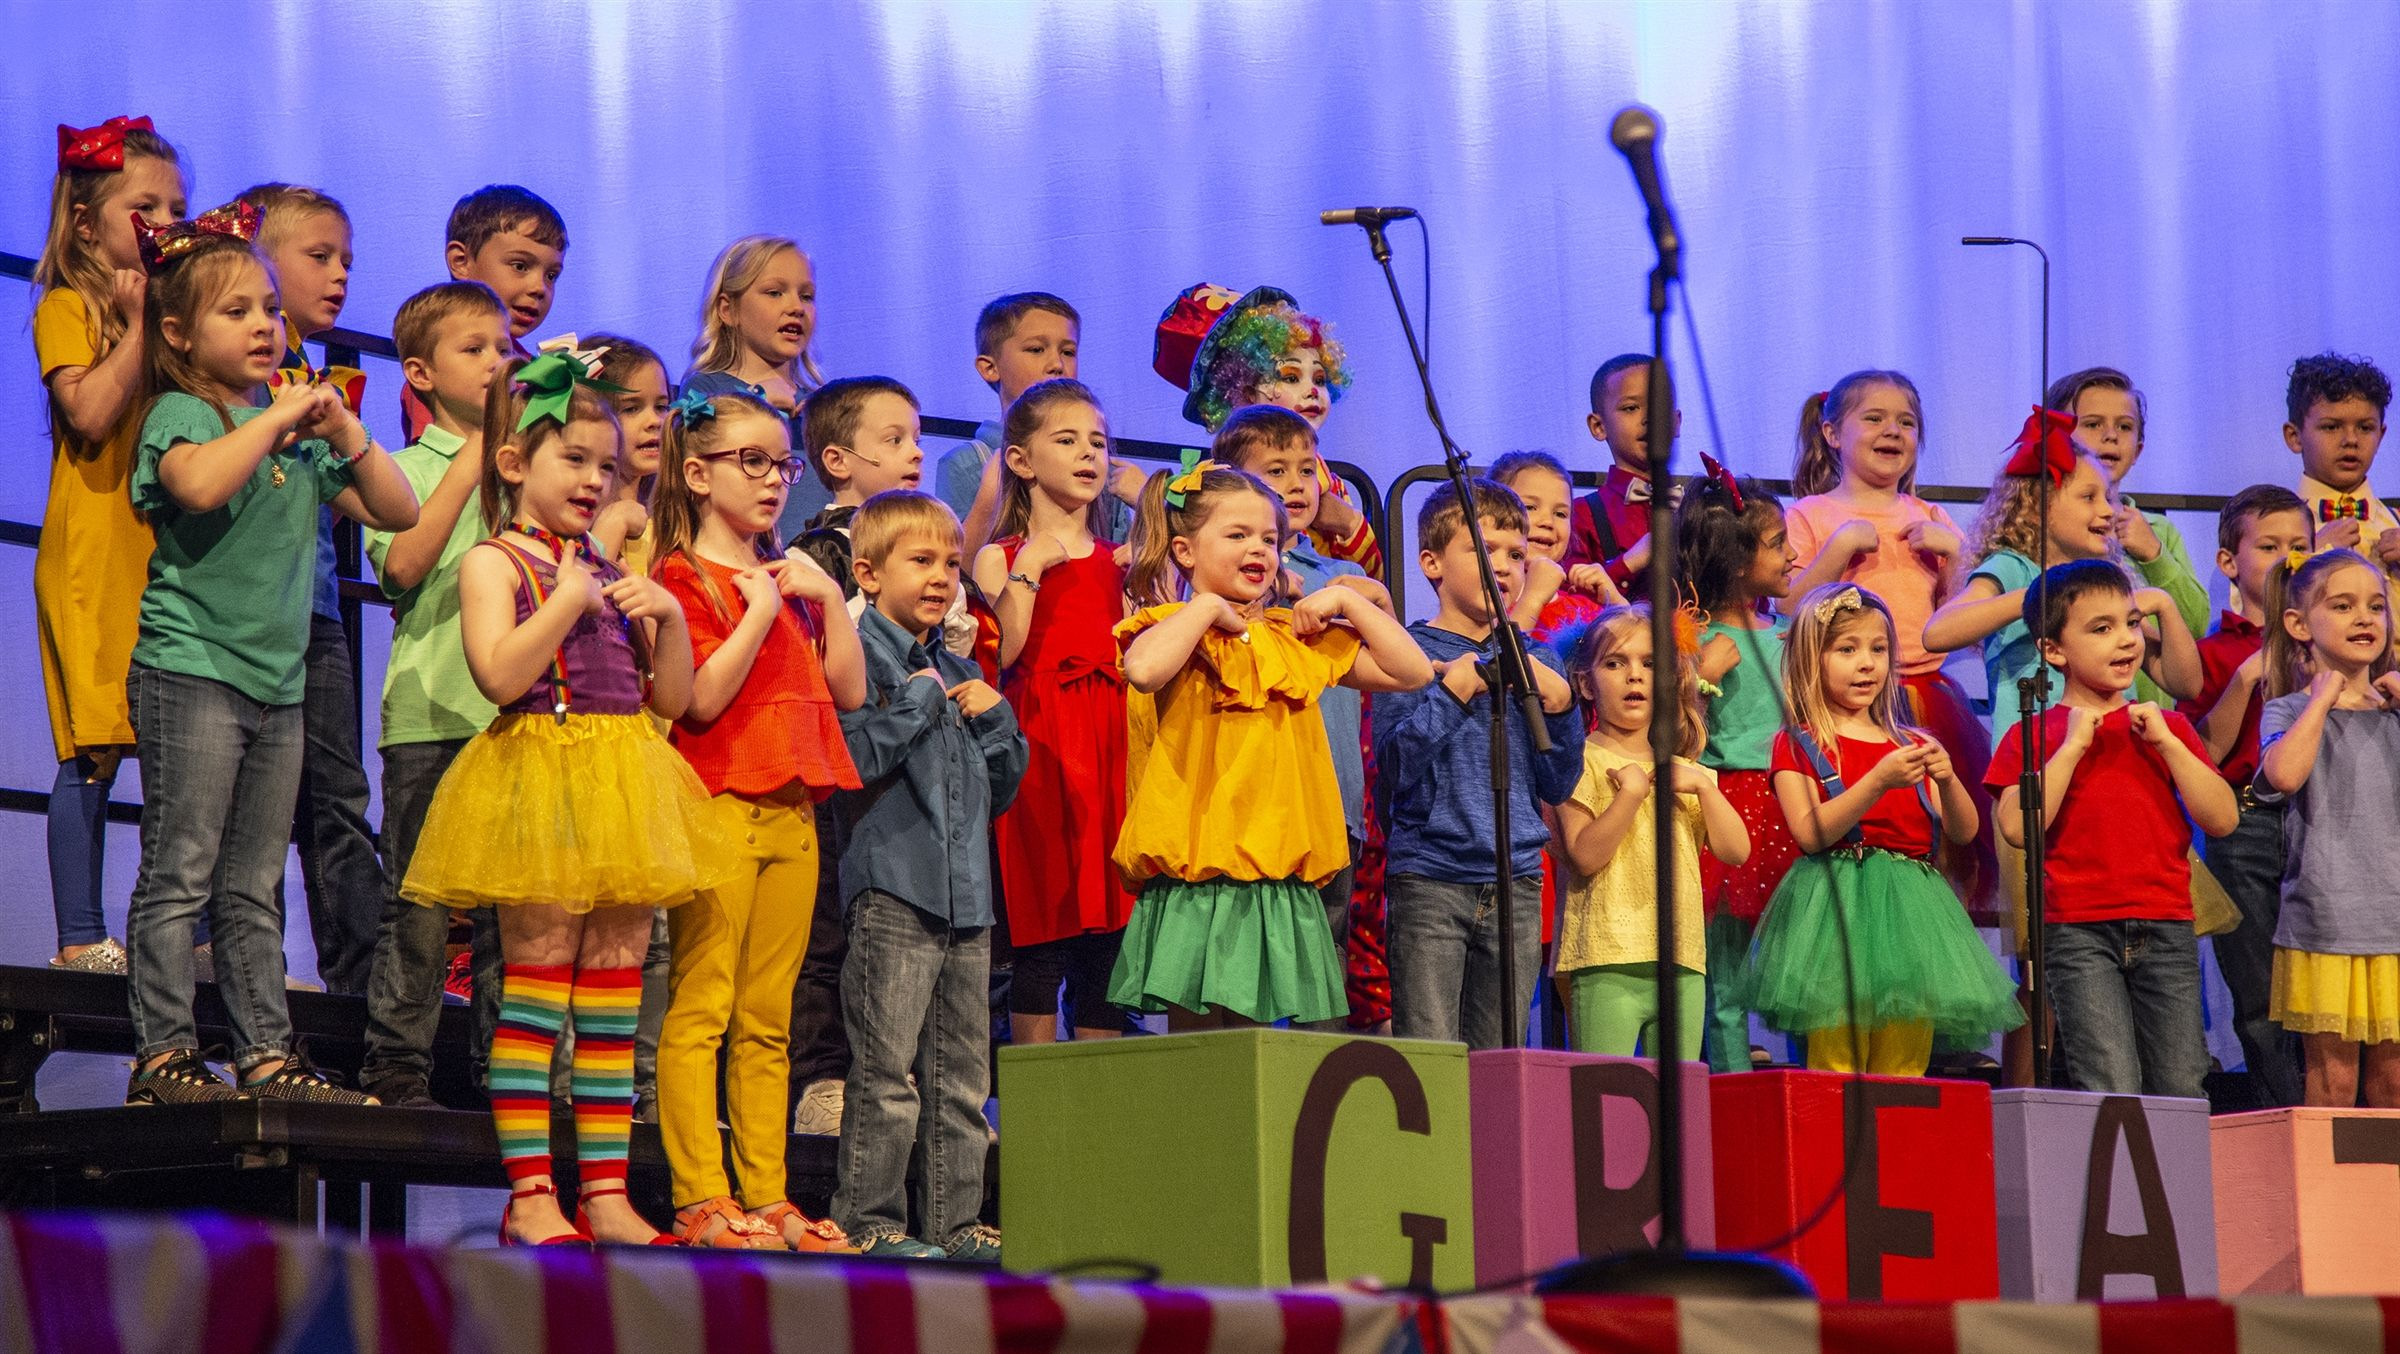 Preschool and Lower School students perform on stage for grandparents on Grandparents Day